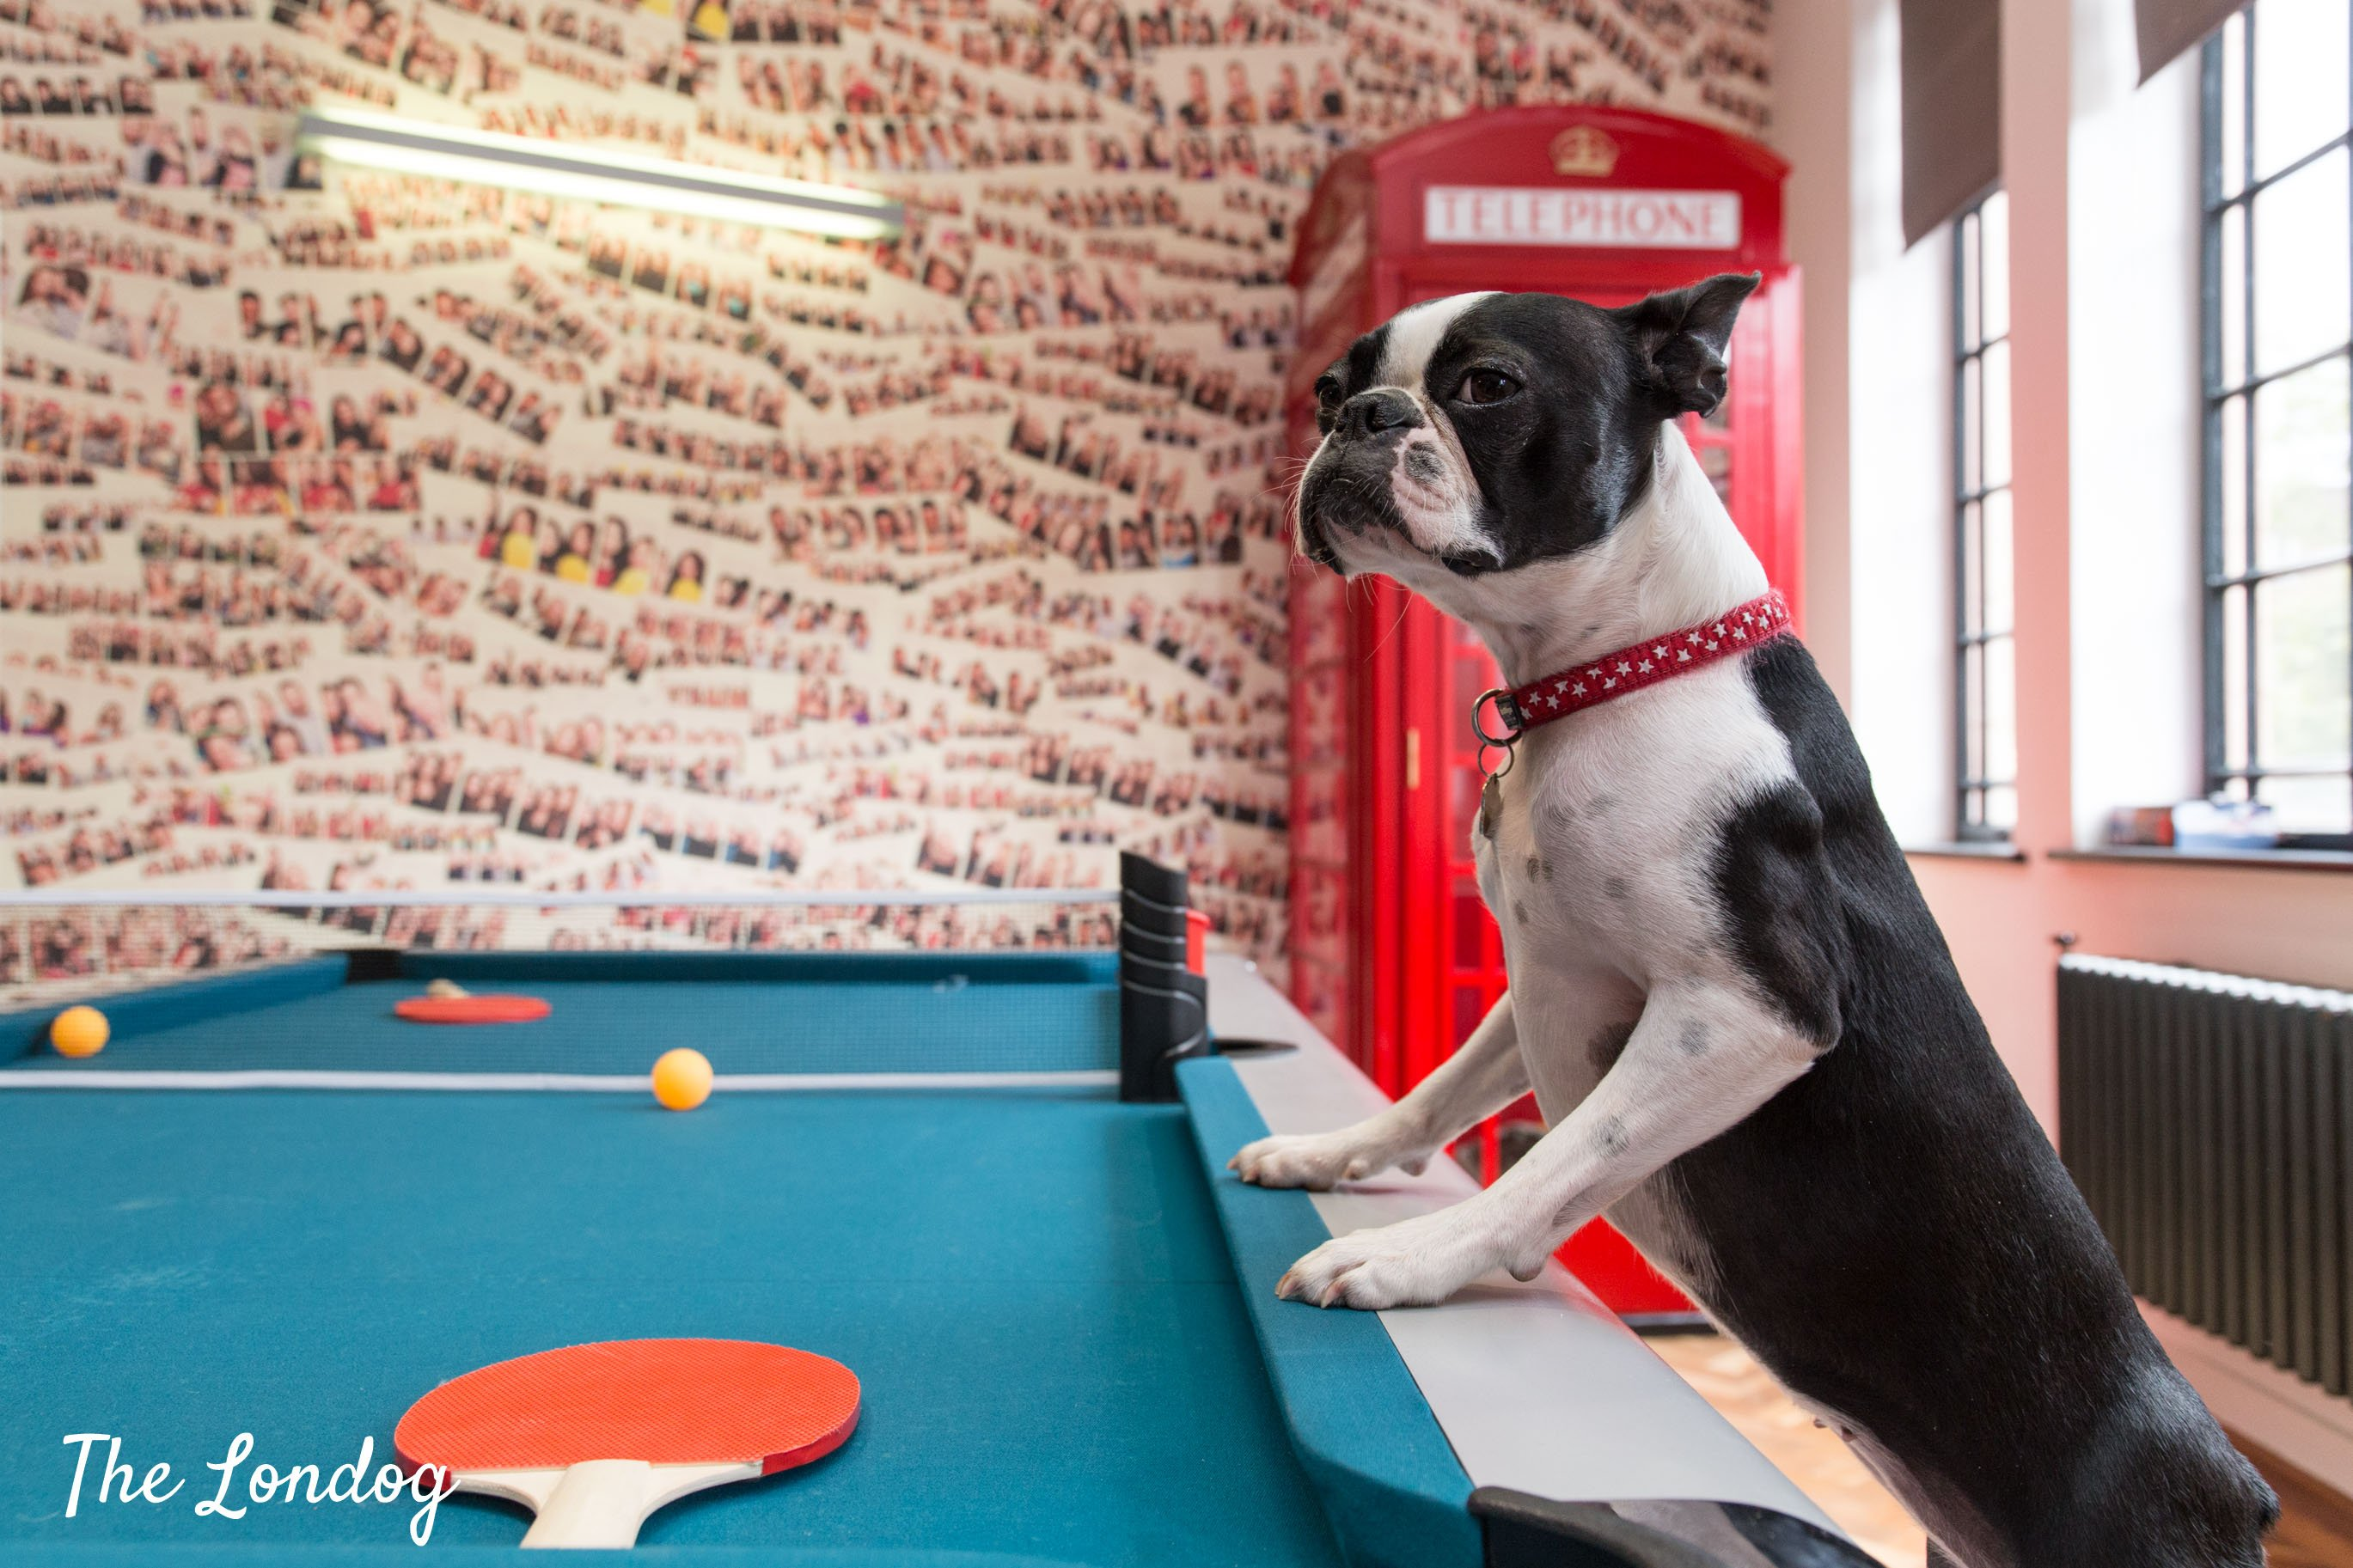 Office dog on table tennis table